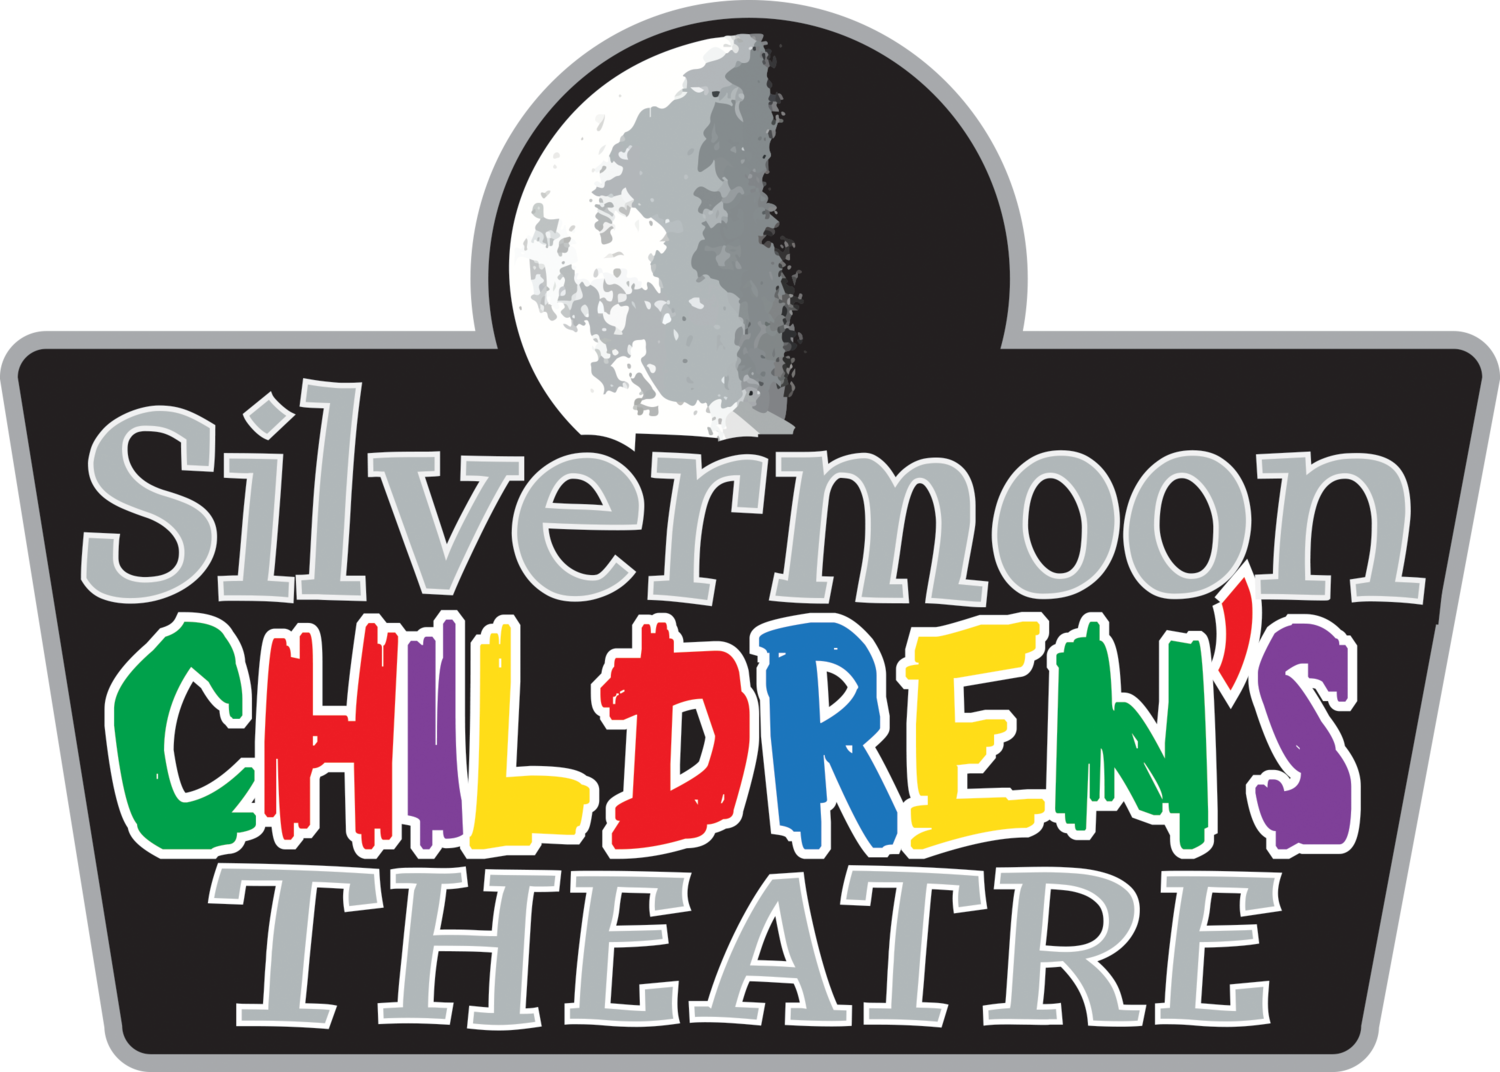 Silvermoon Children's Theatre